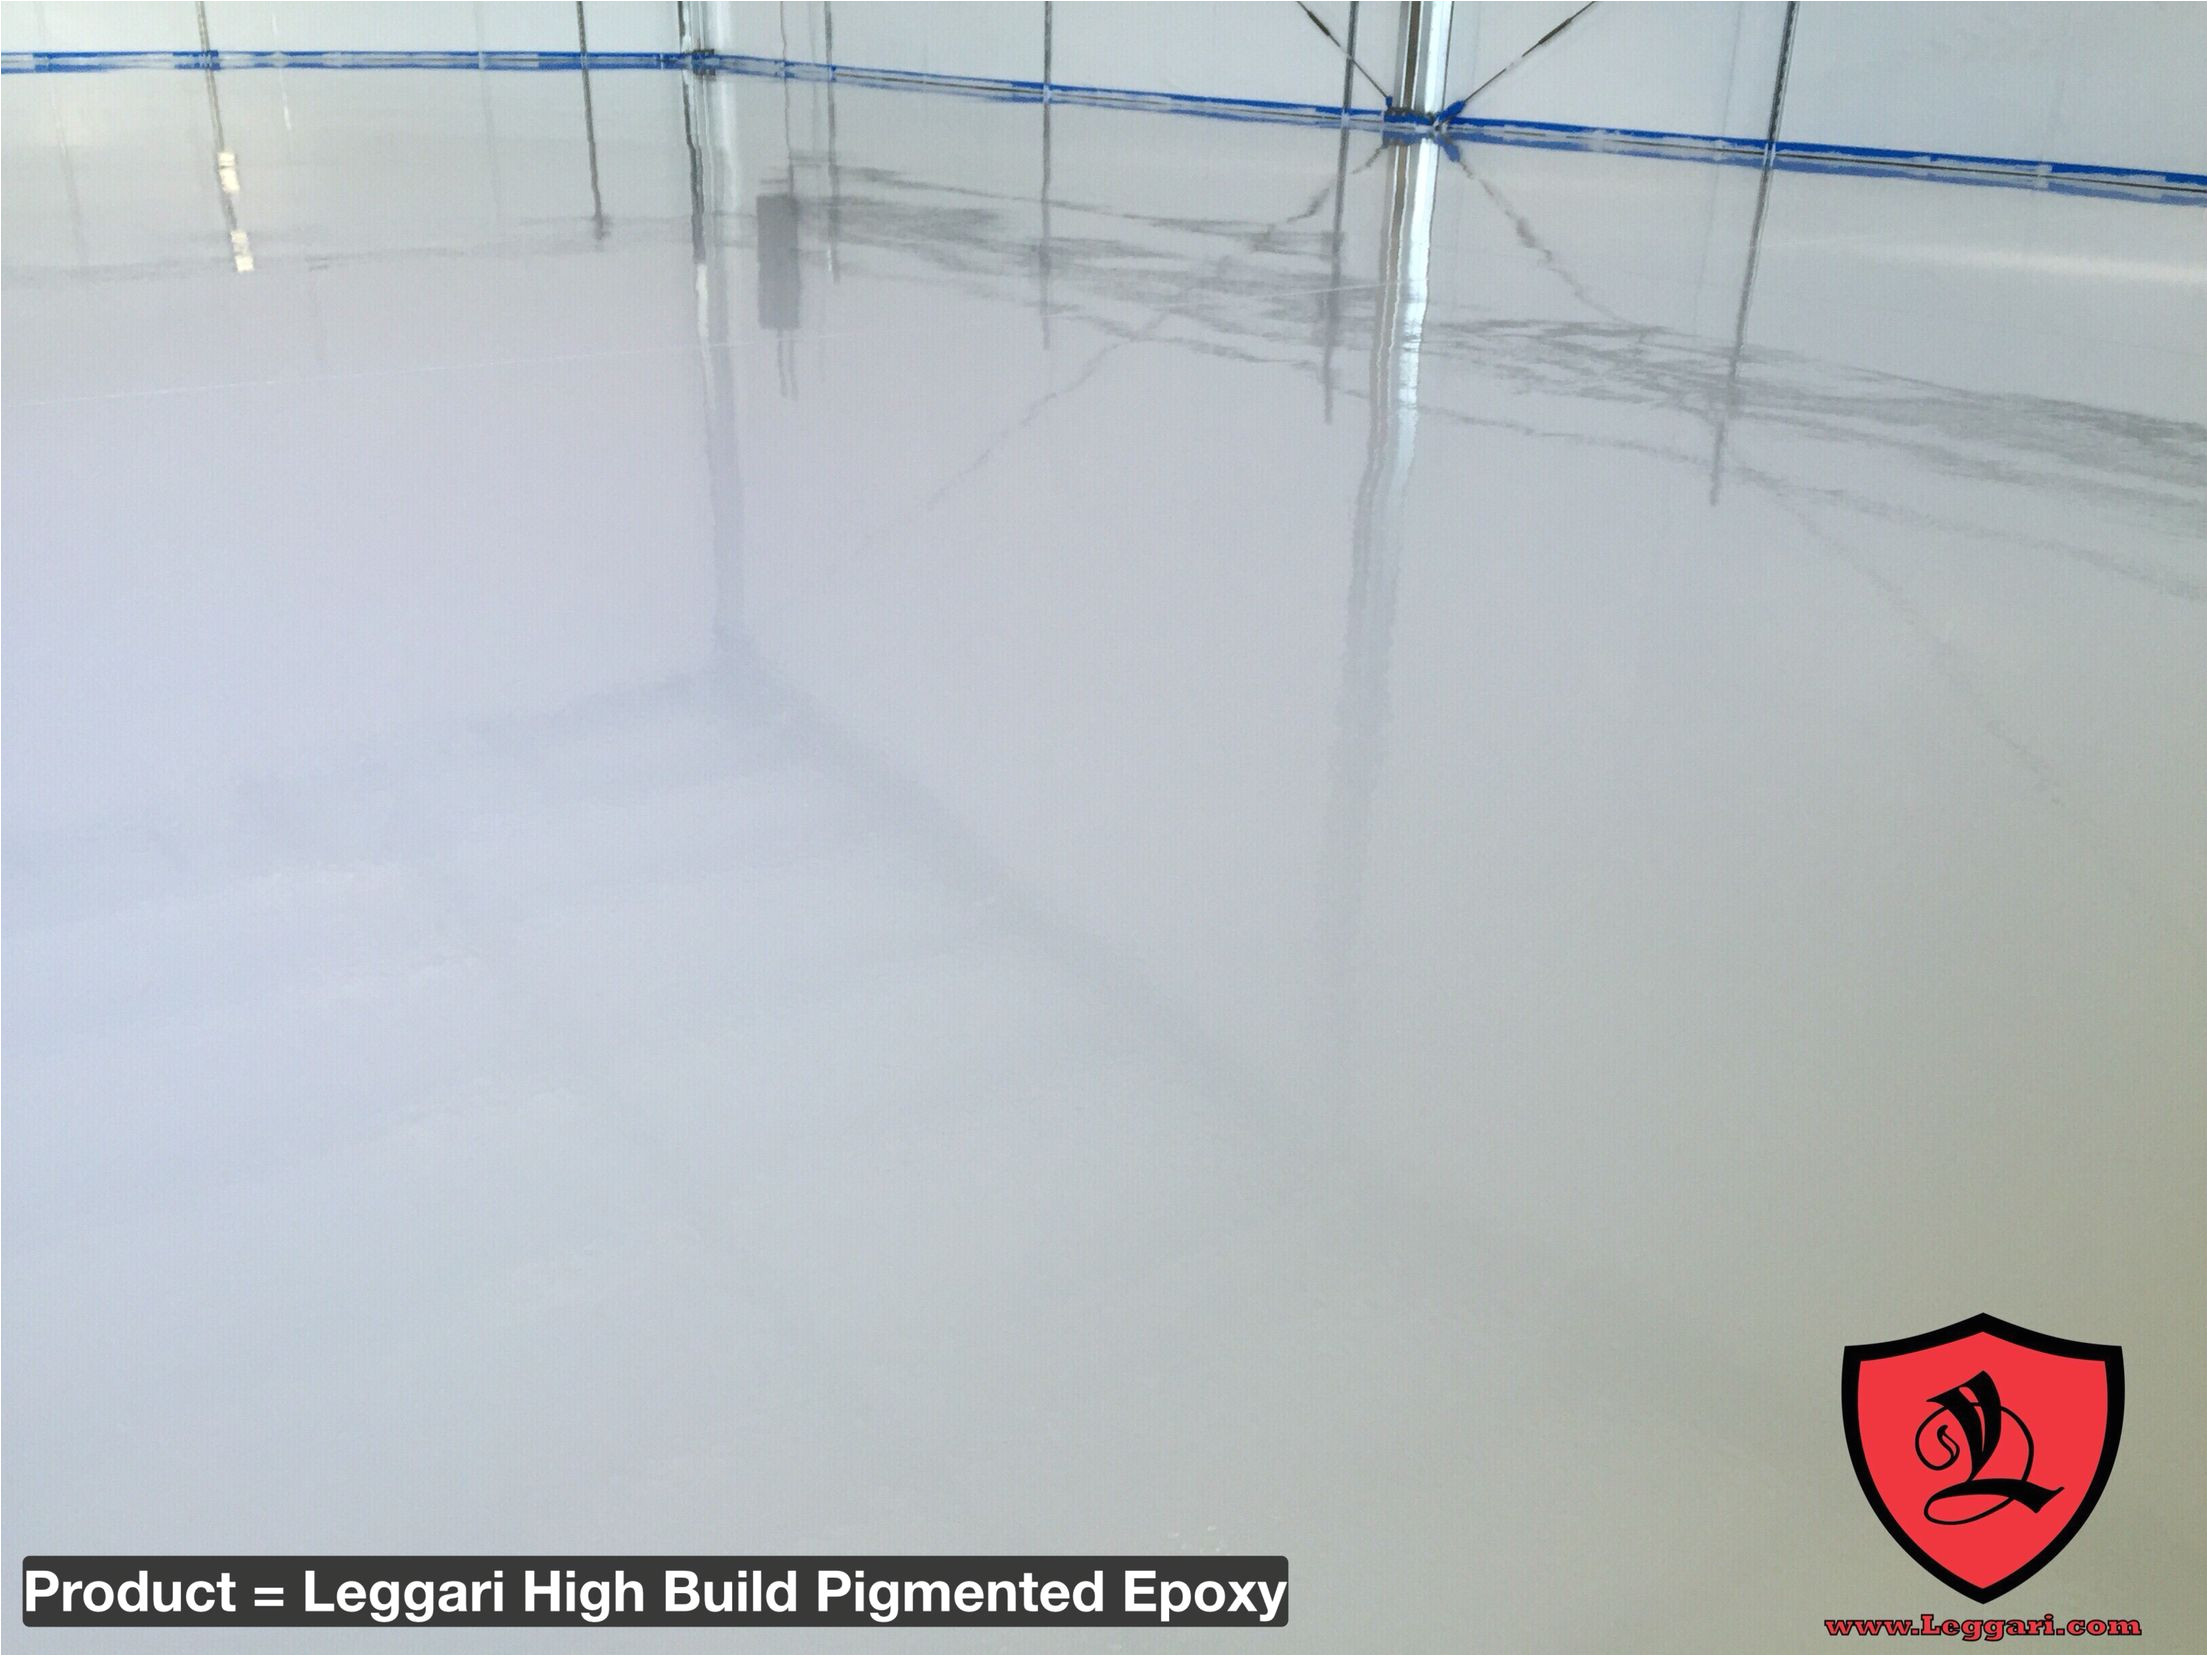 leggari products diy solid colored epoxy coatings for floors with our 100 solids pigmented epoxy